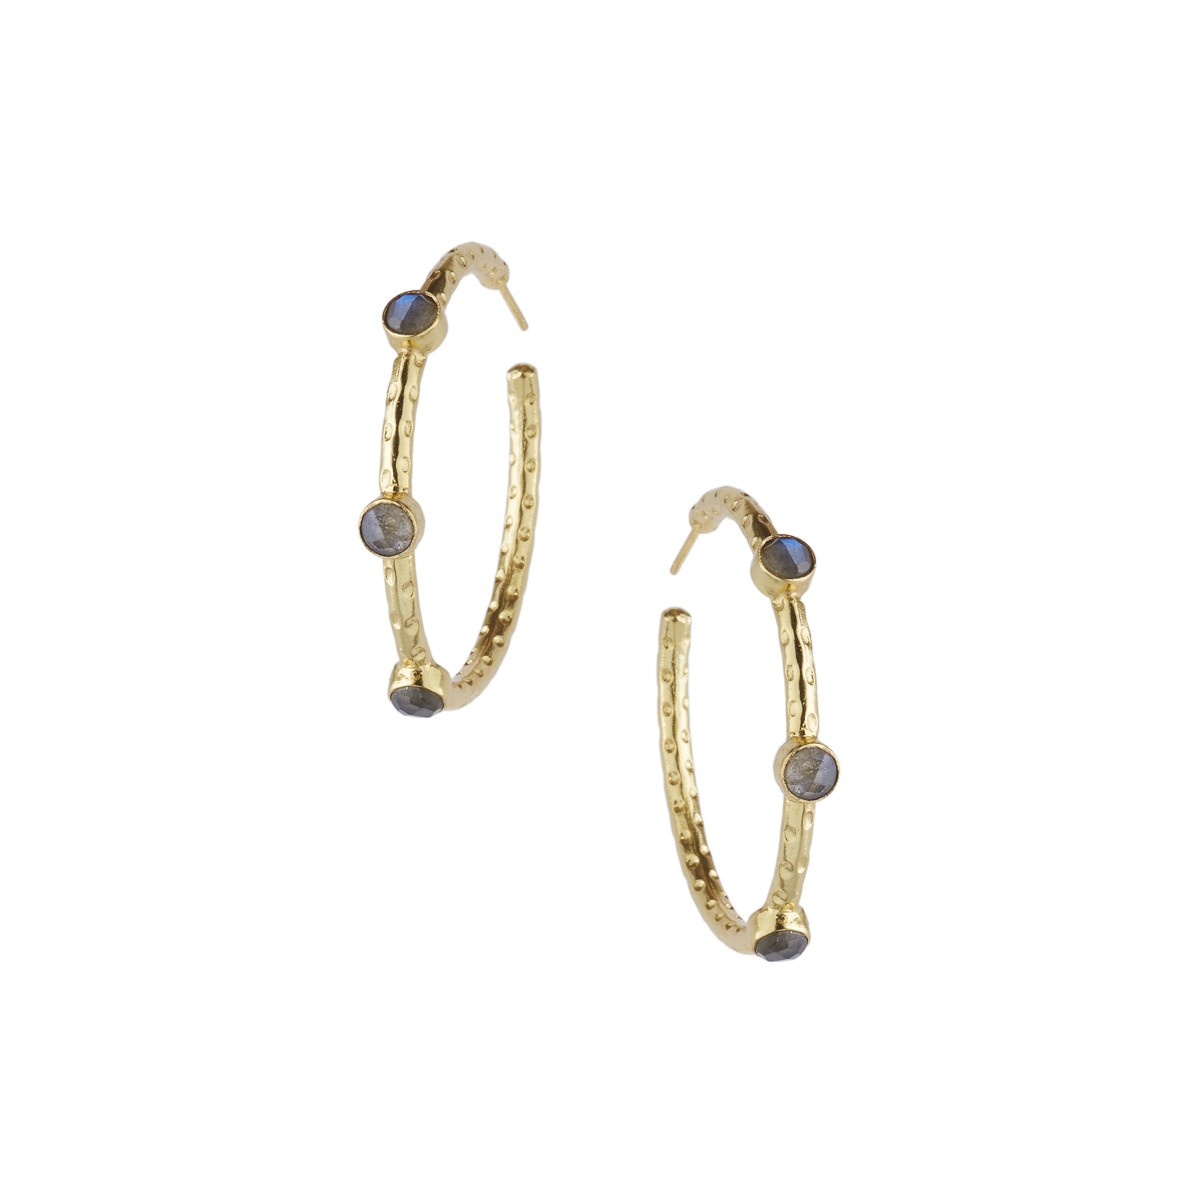 Cruise Gemstone Hoop Earrings in Labradorite